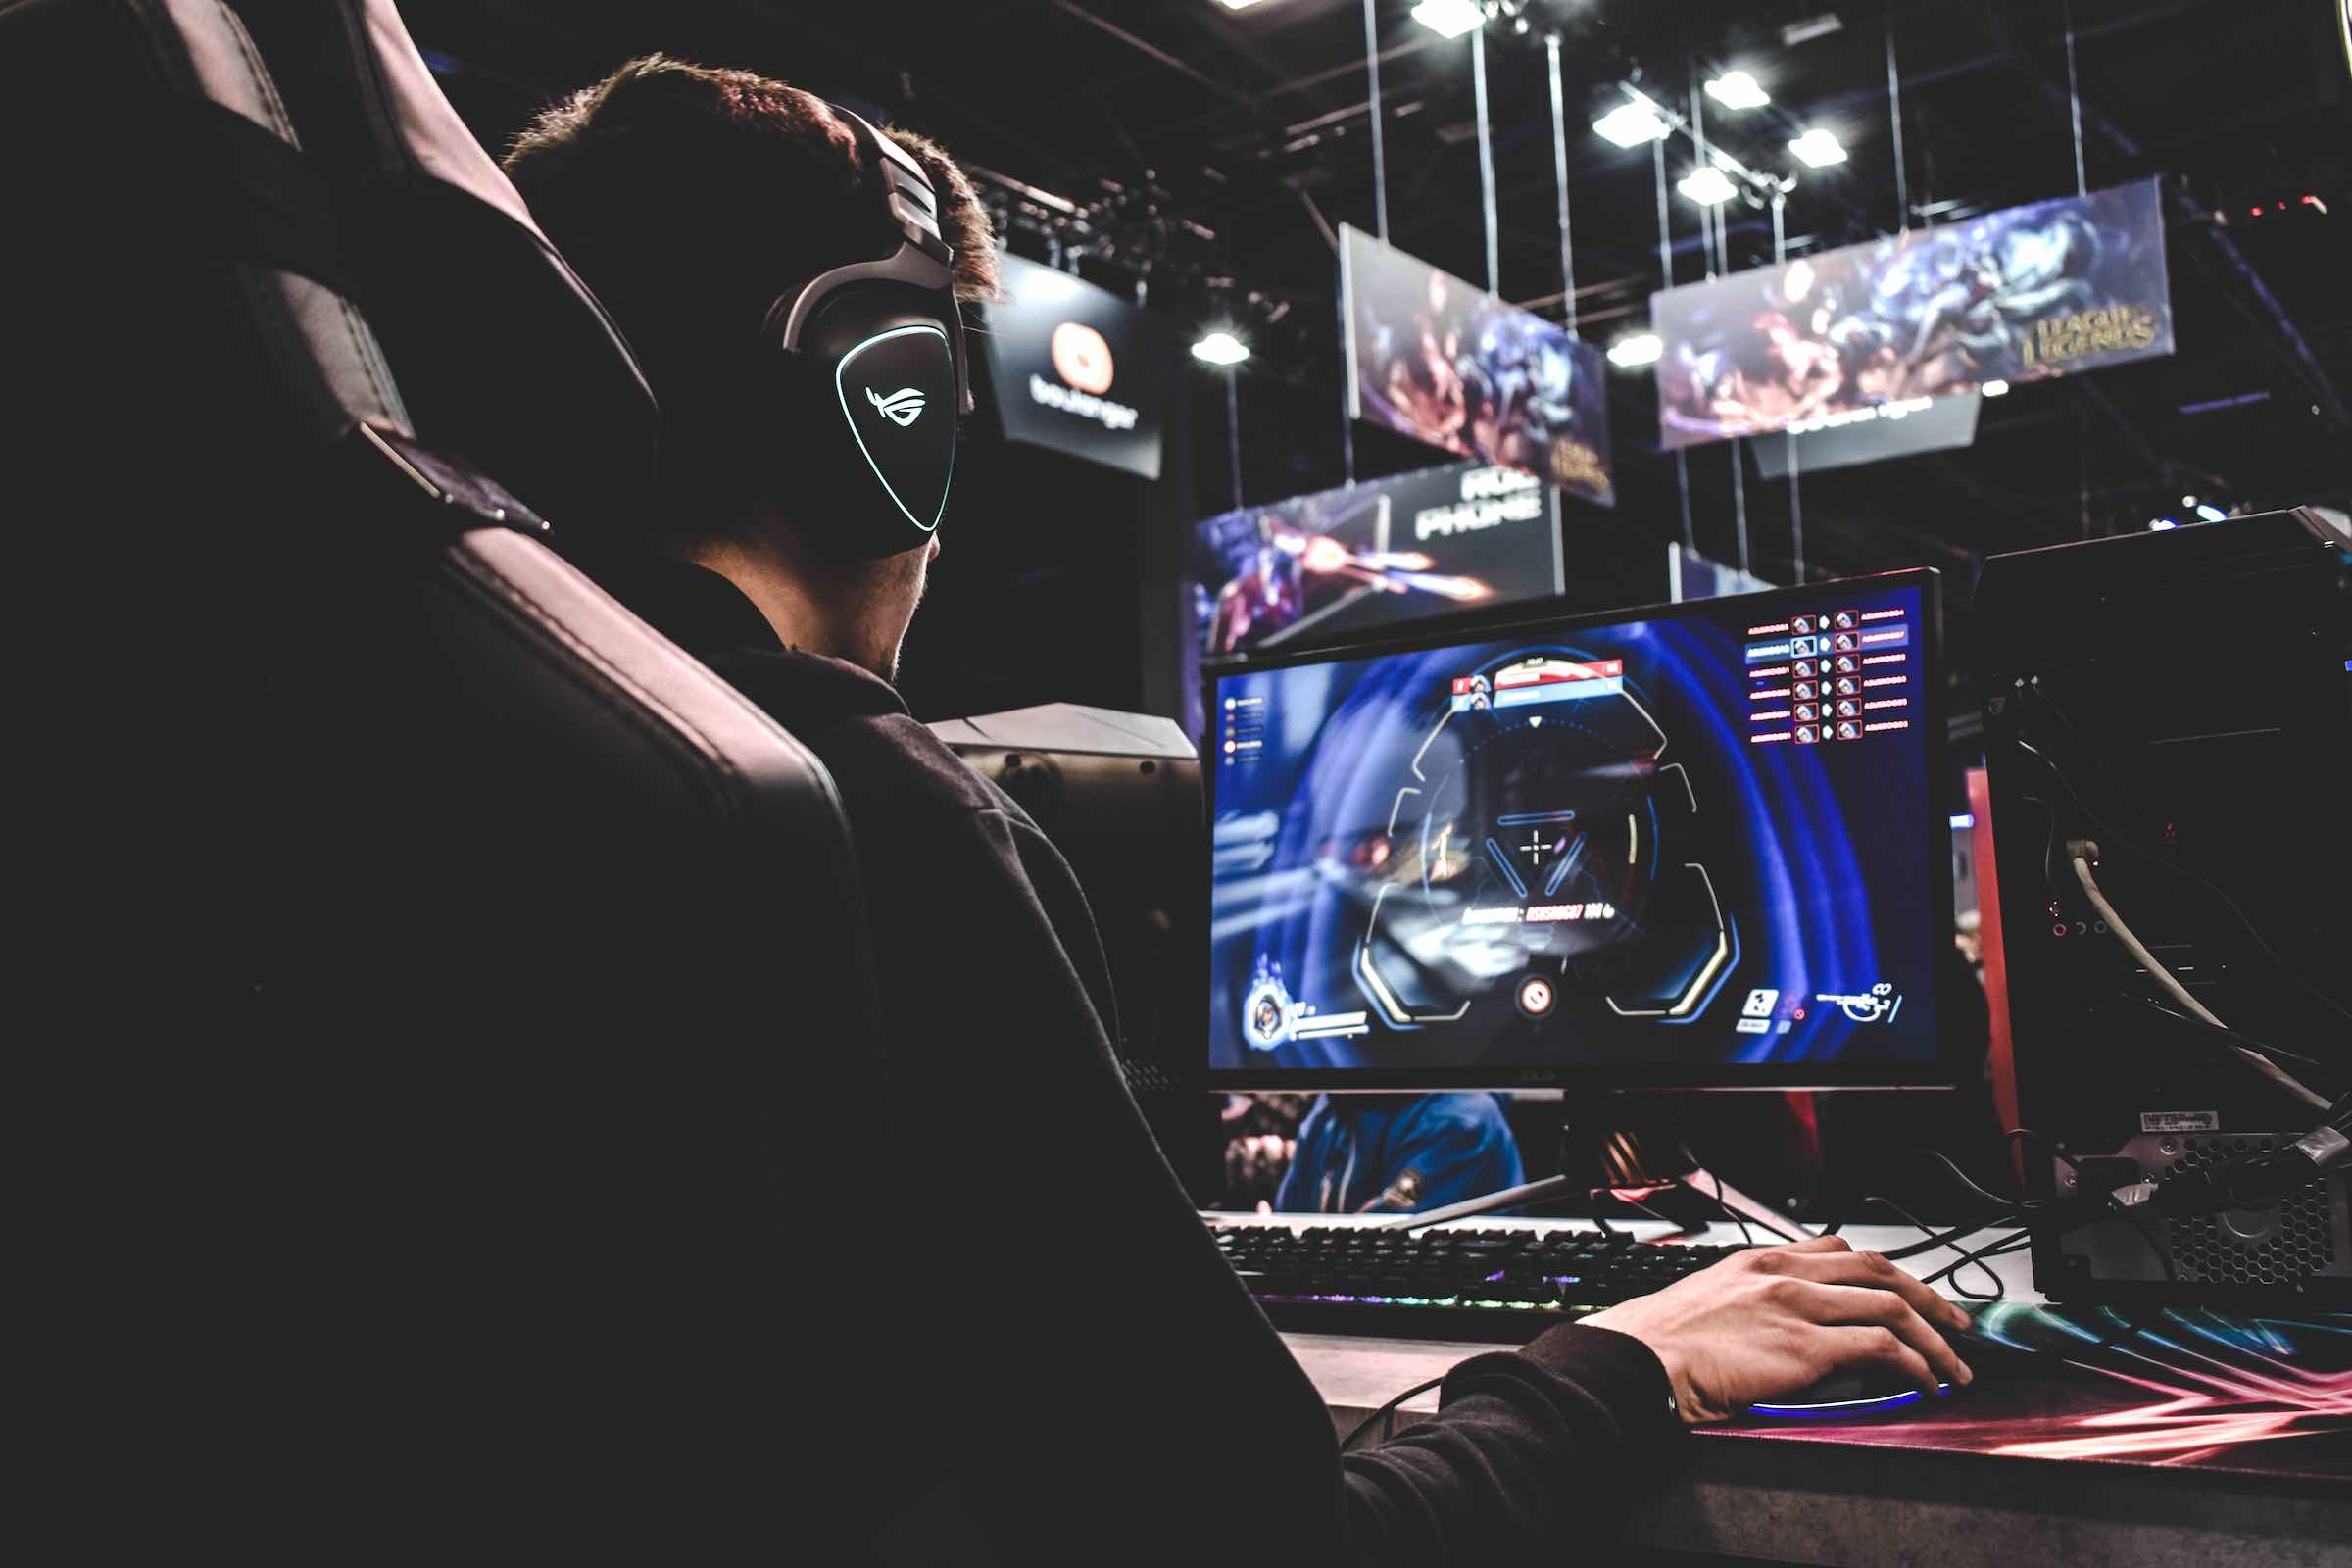 We surveyed online gamers to understand their habits and explore their virtual lives. Check out these surprising insights into the online gaming community.